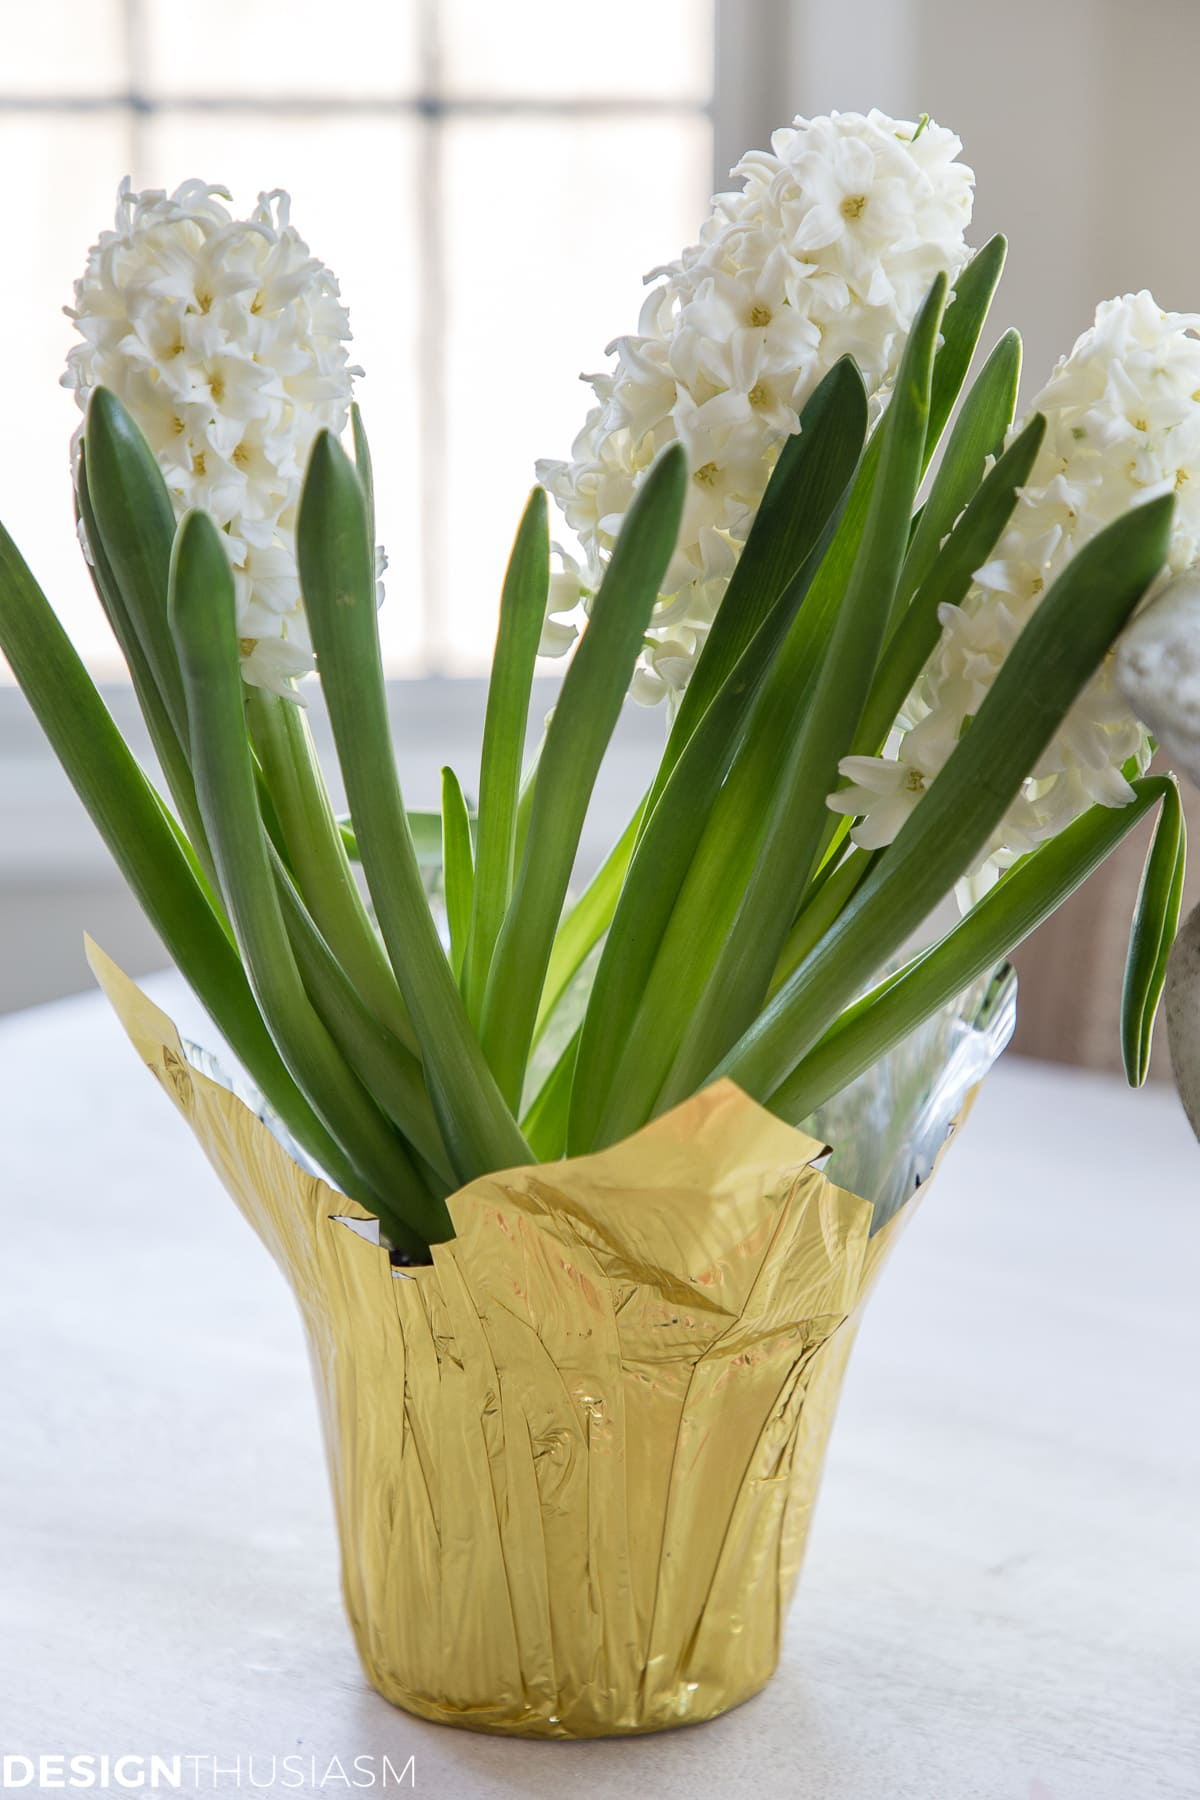 white hyacinths for easy Easter centerpieces